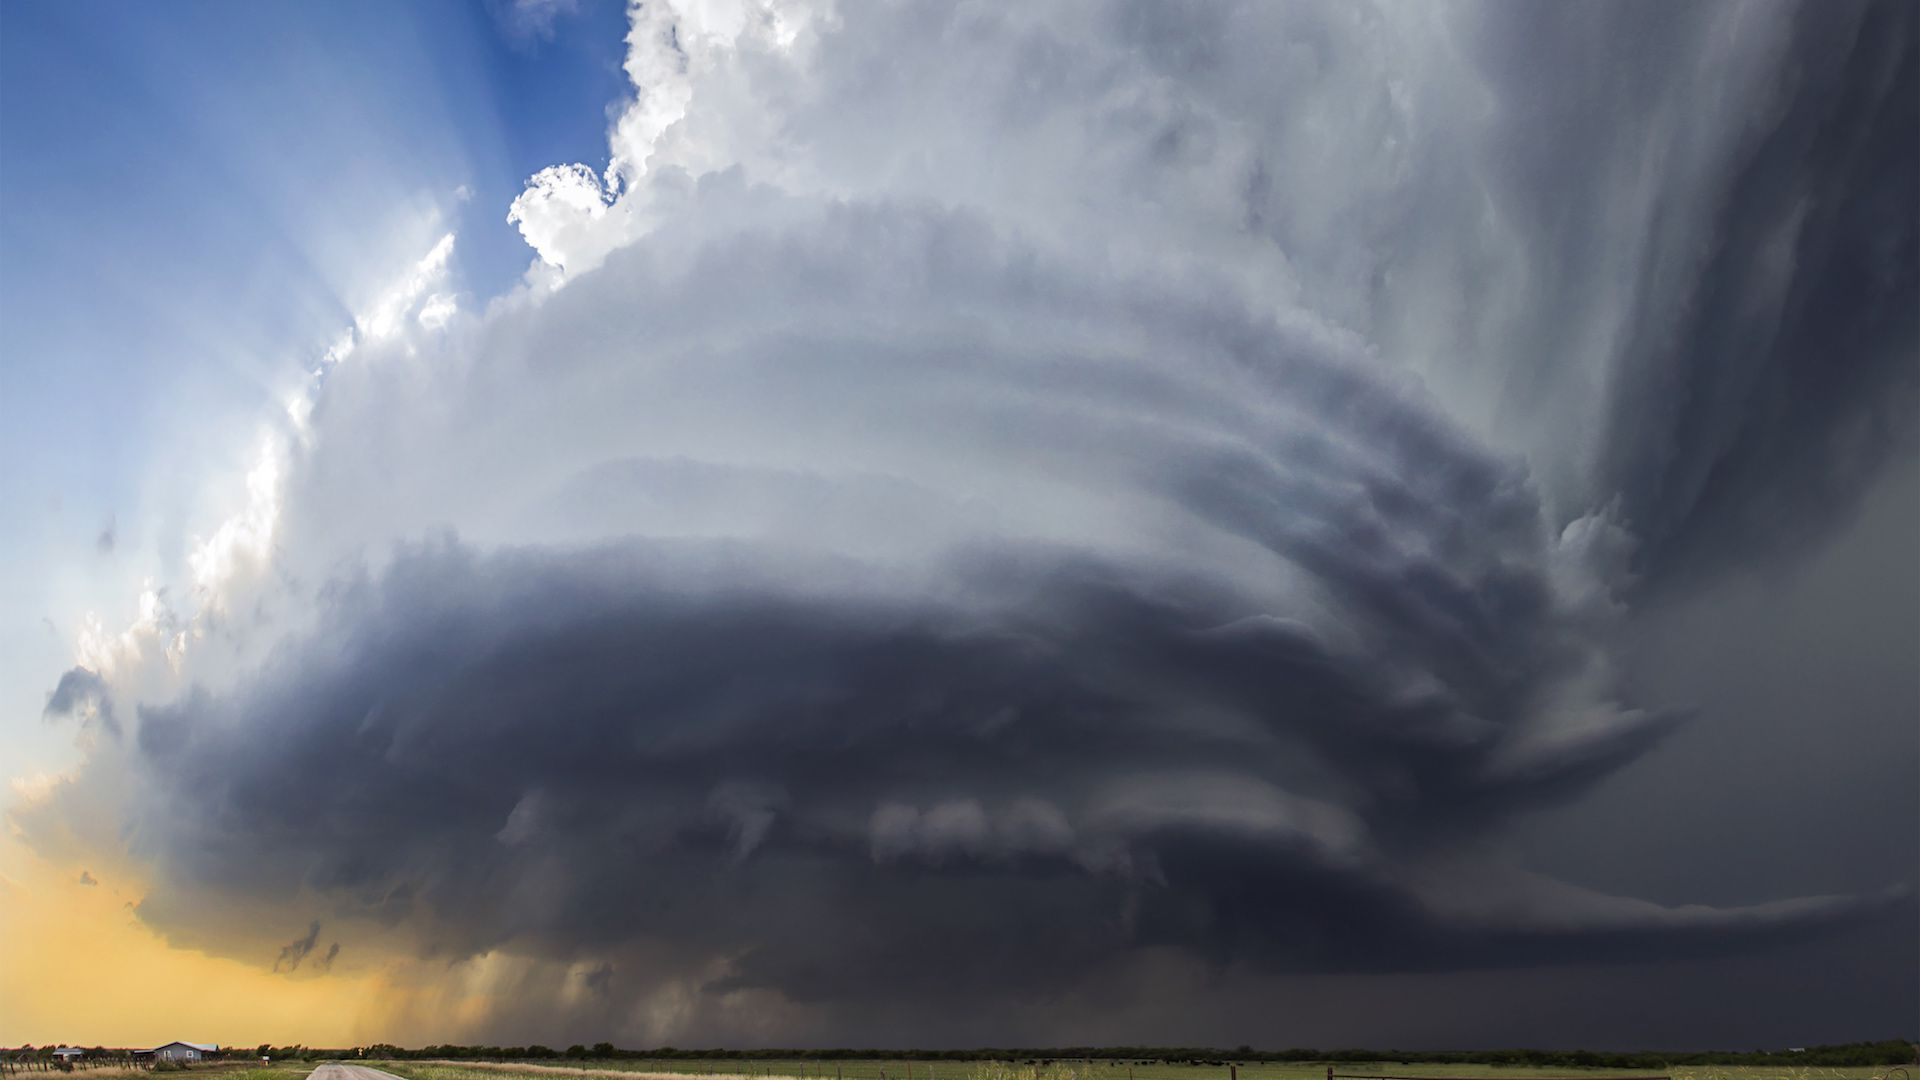 A supercell thunderstorm in the High Plains.